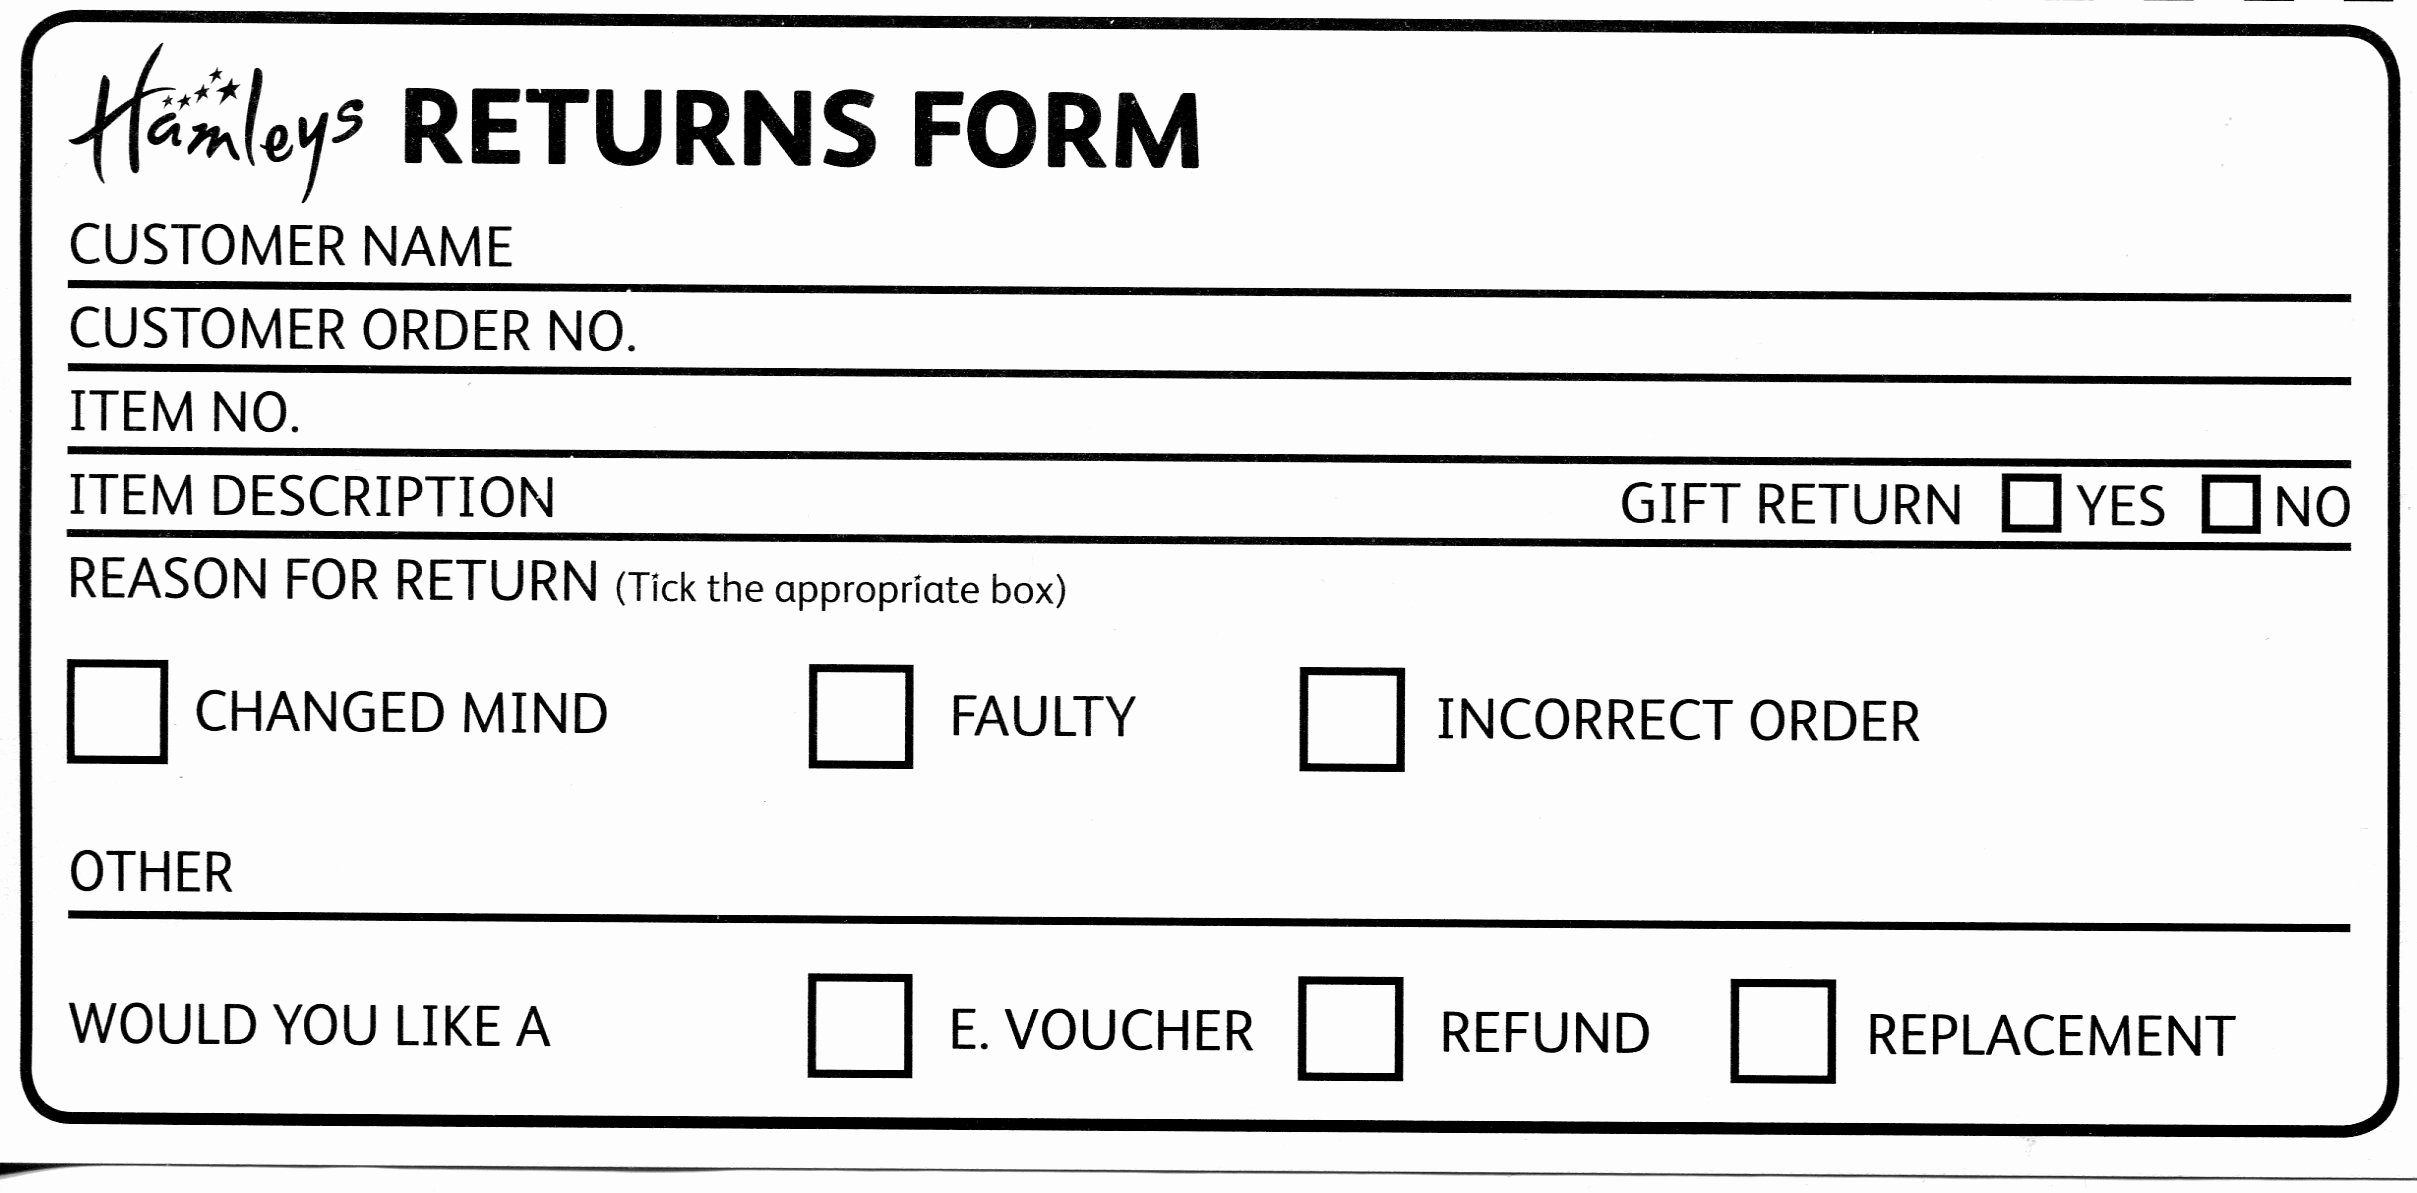 Return Policy Template Word Unique Our Returns Policy Hamleys